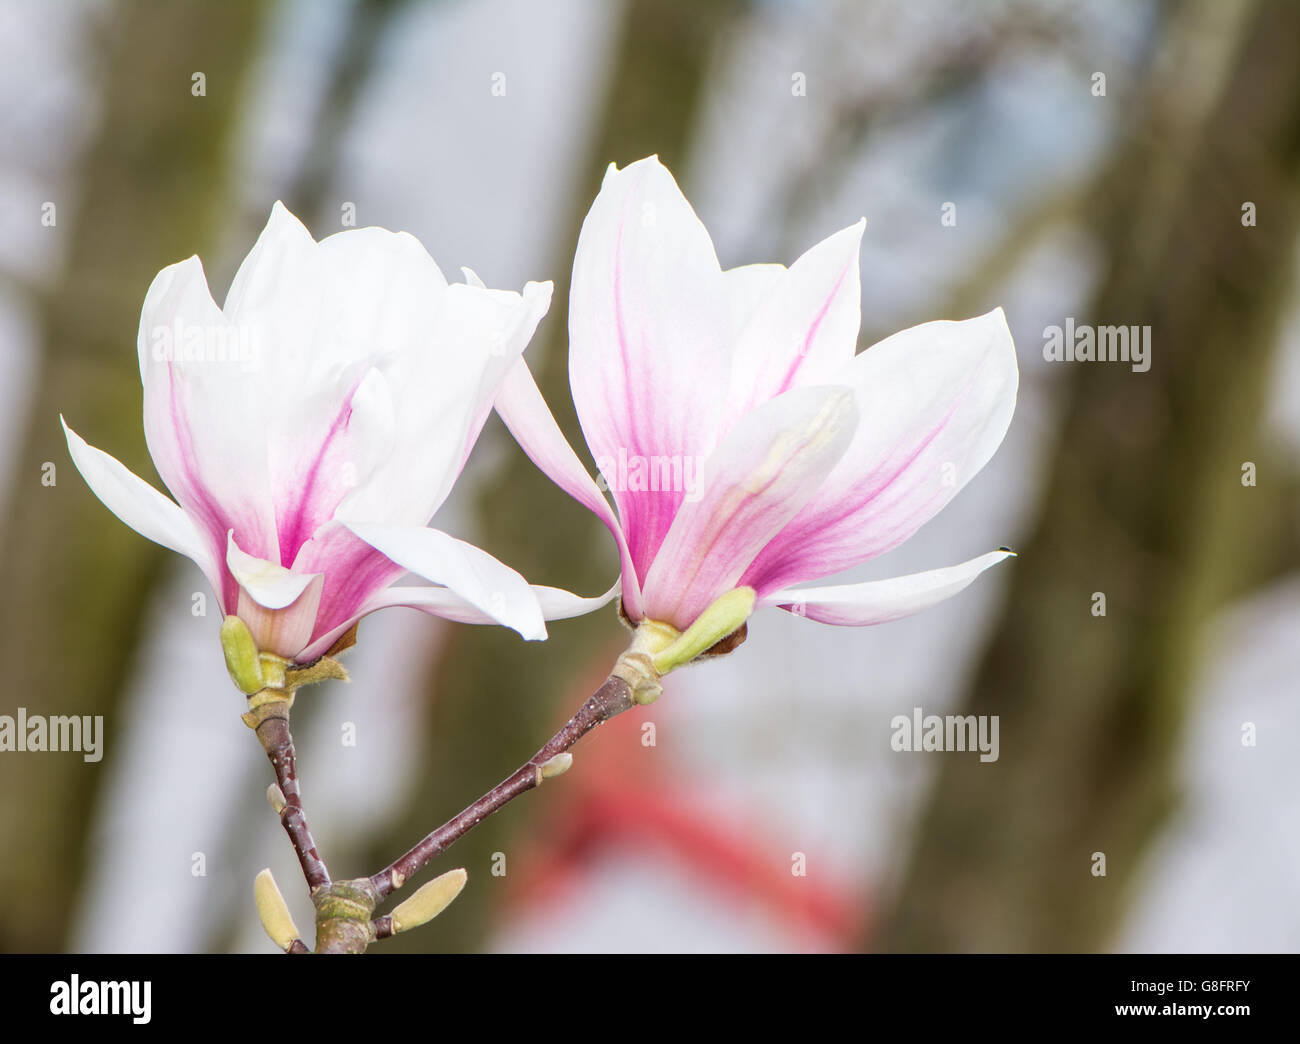 Twig of a flowering magnolia tree with white blossoms - Stock Image